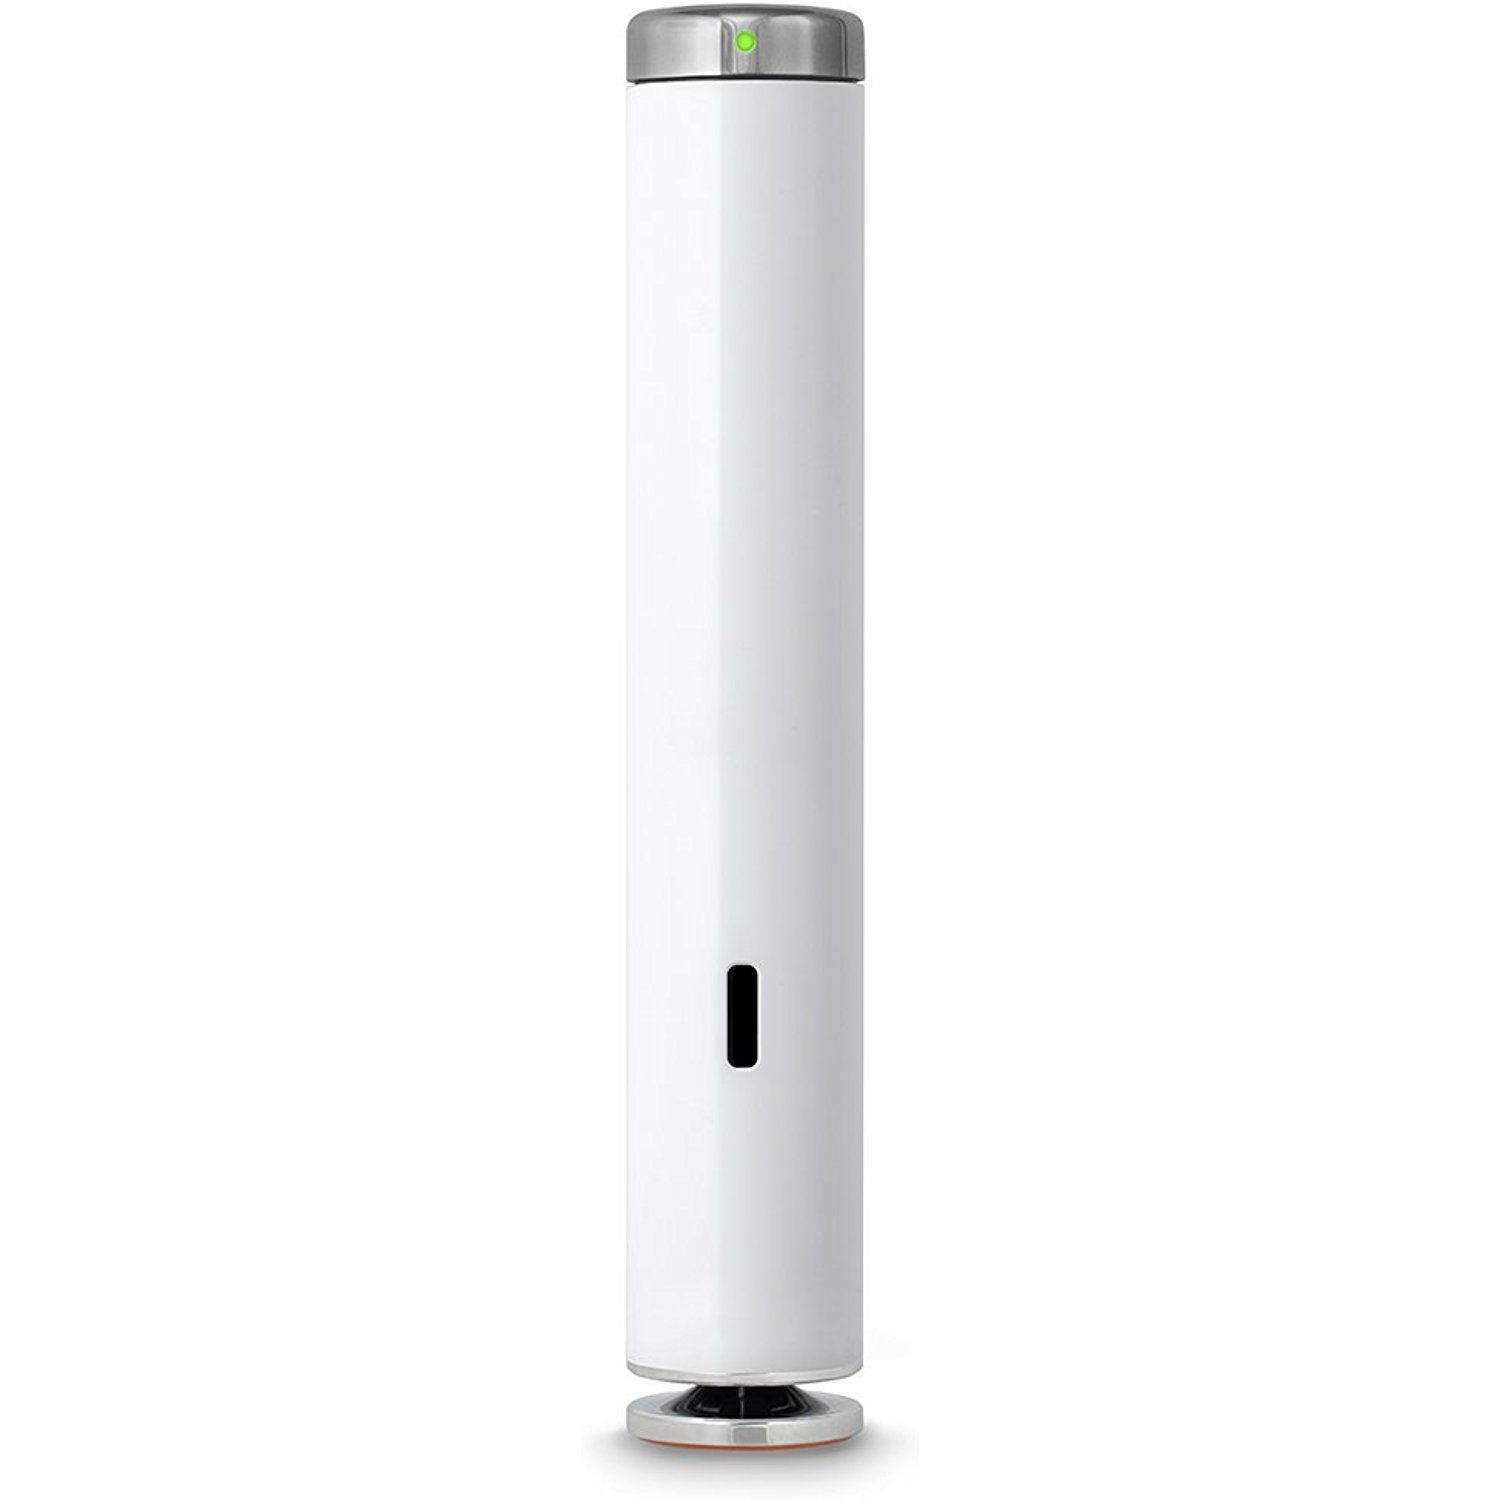 Chefsteps Joule Sous Vide 1100 Watts White Body Stainless Steel